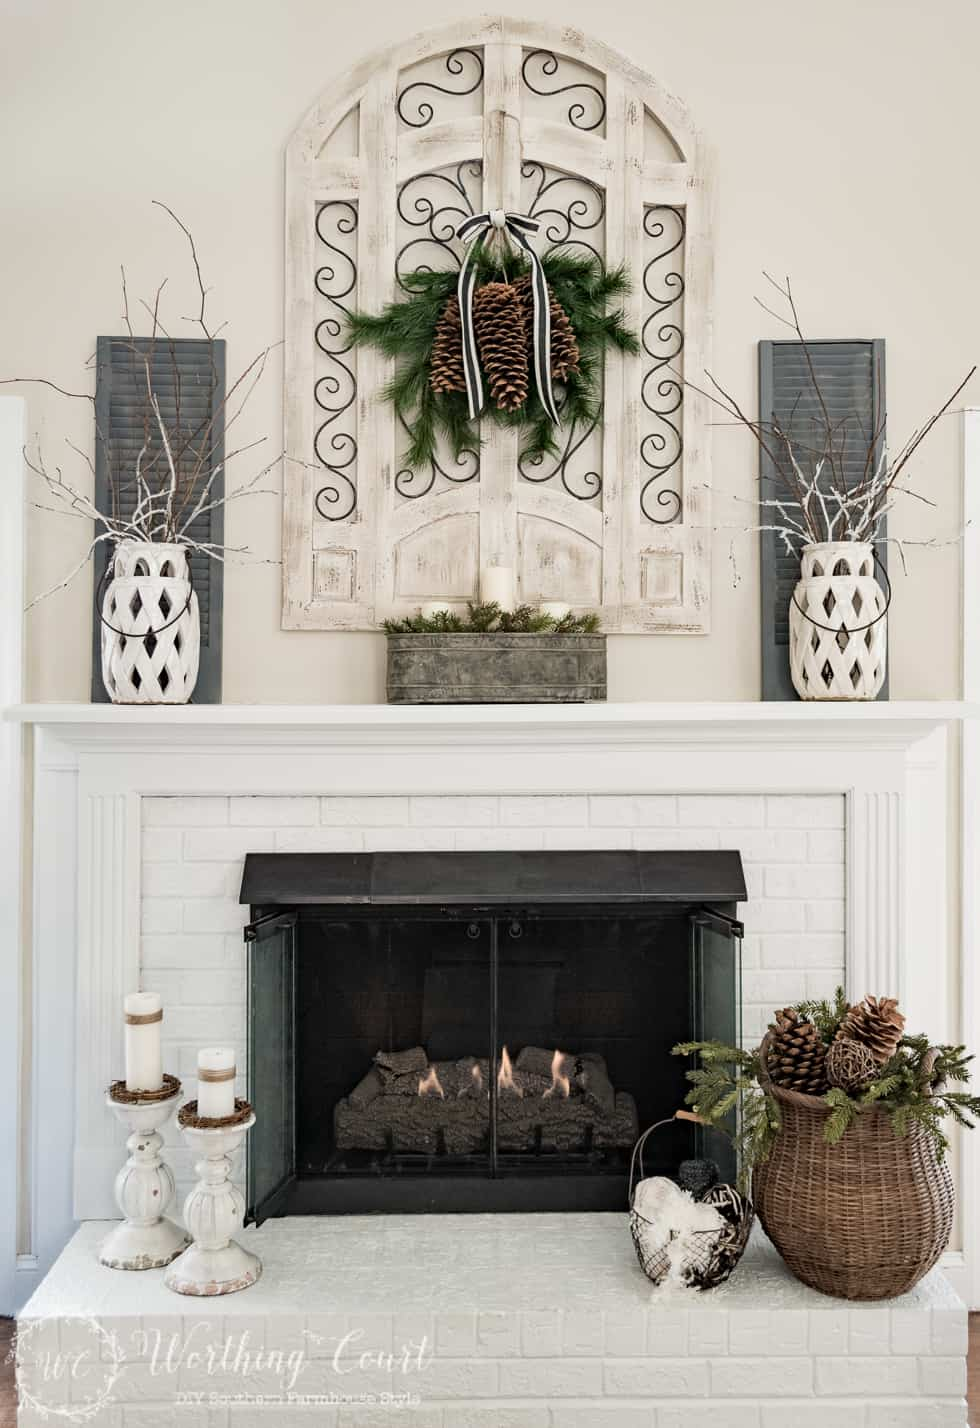 Farmhouse winter fireplace #winter #winterdecoratingideas